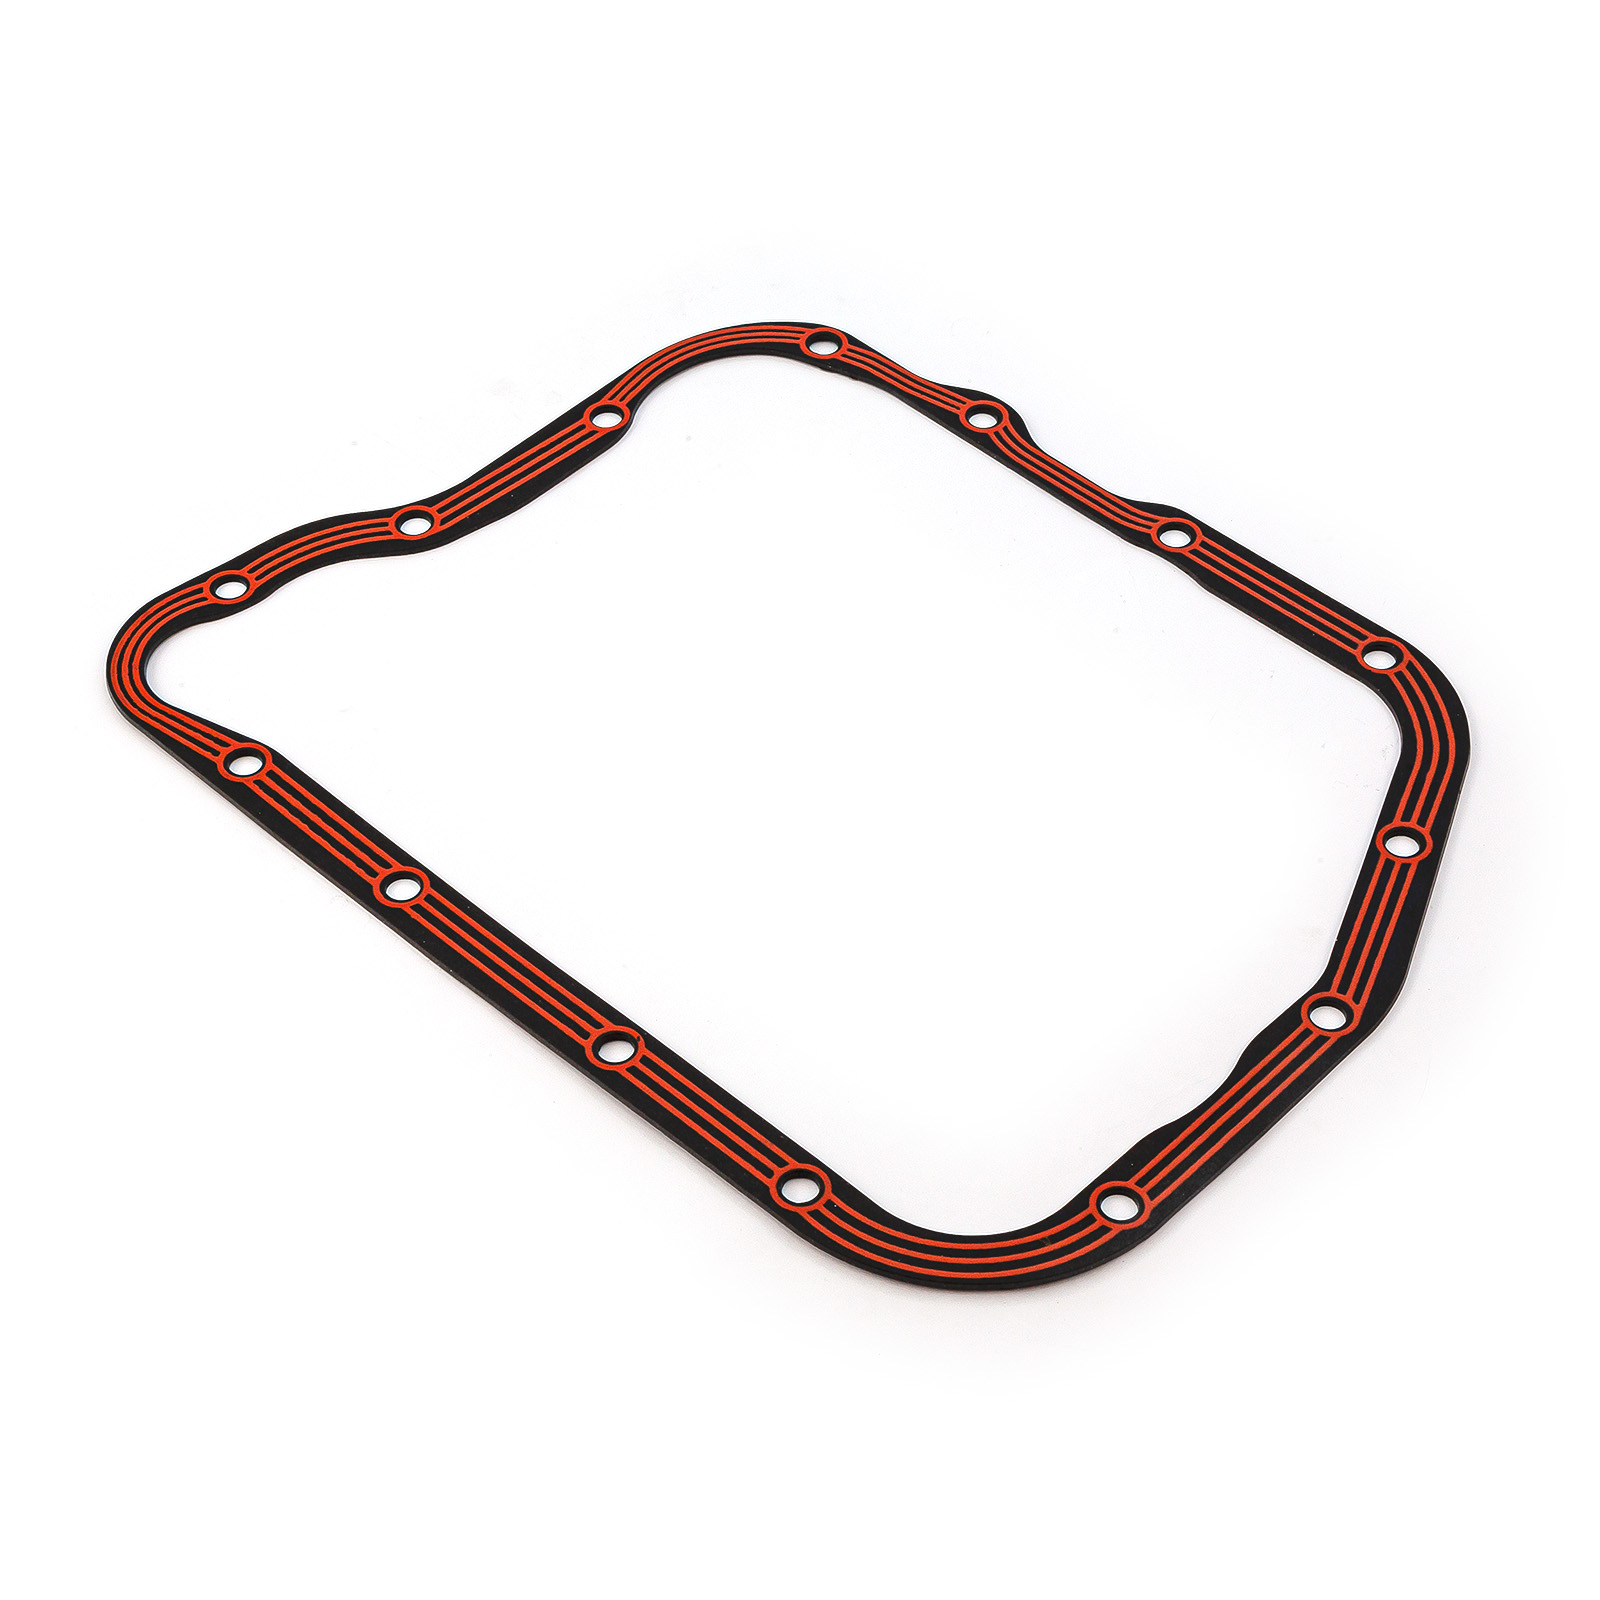 Chrysler Dodge 727 Torqueflite Transmission Pan Gasket Steel with Rubber